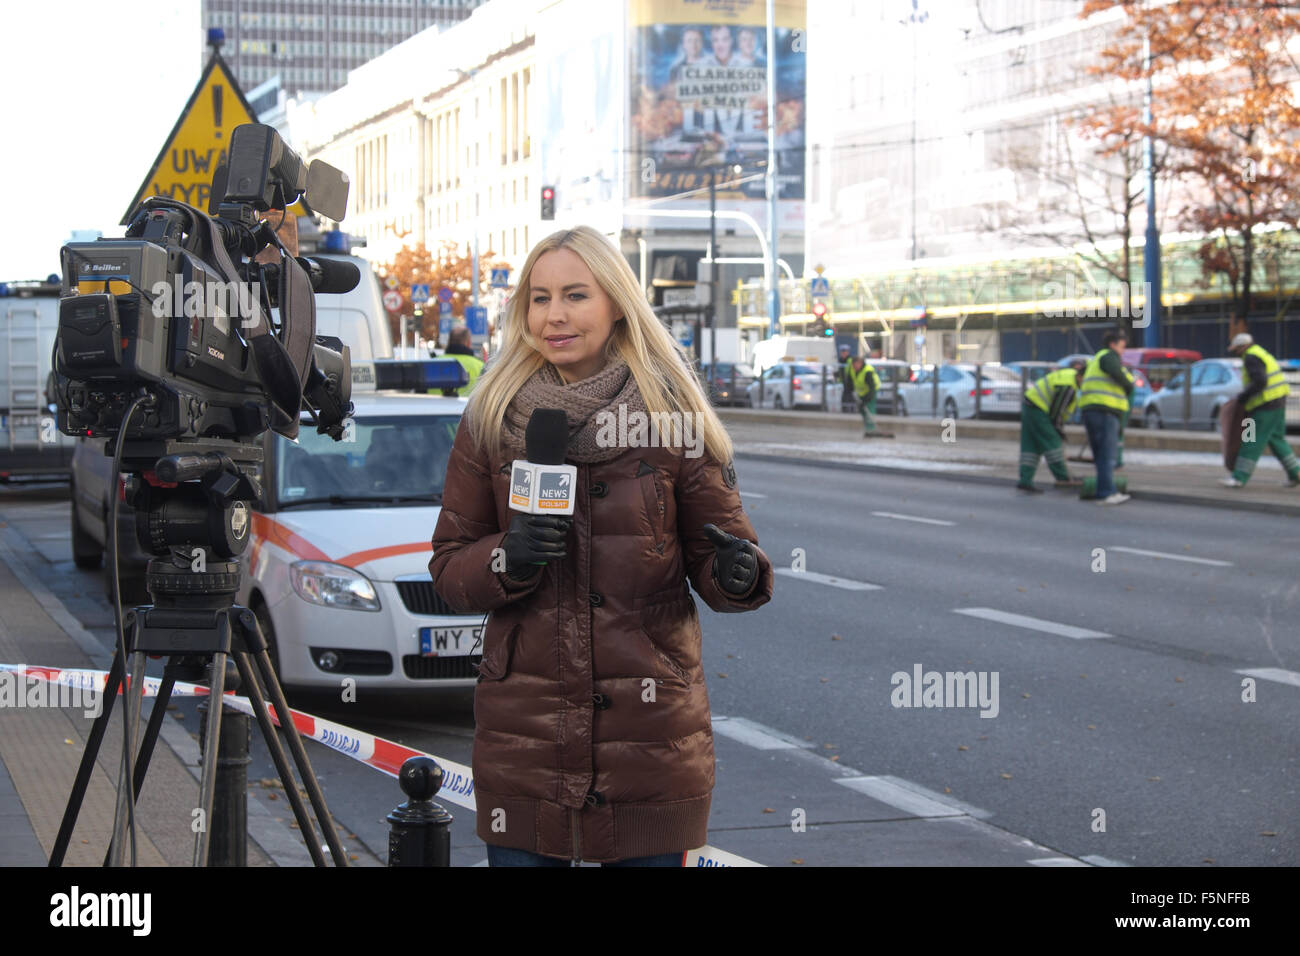 Warsaw Poland PolSat TV news broadcaster  at the scene of an accident in Warsaw city centre - Stock Image